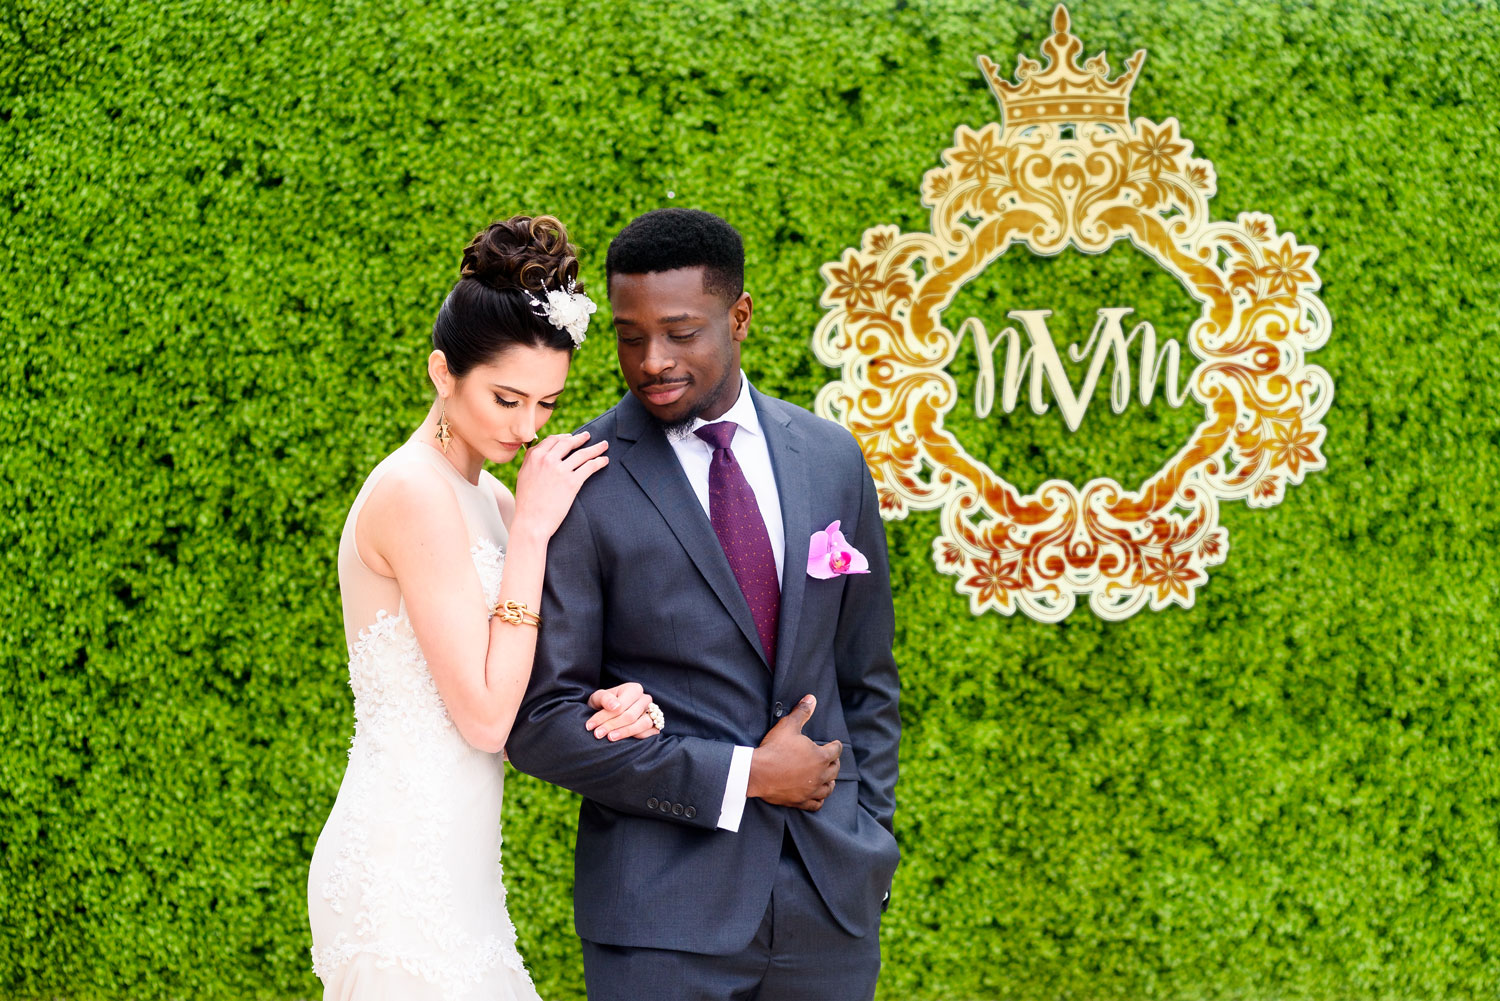 Styled shoot with bright purple color palette storybook setting Lily V Events bride and groom